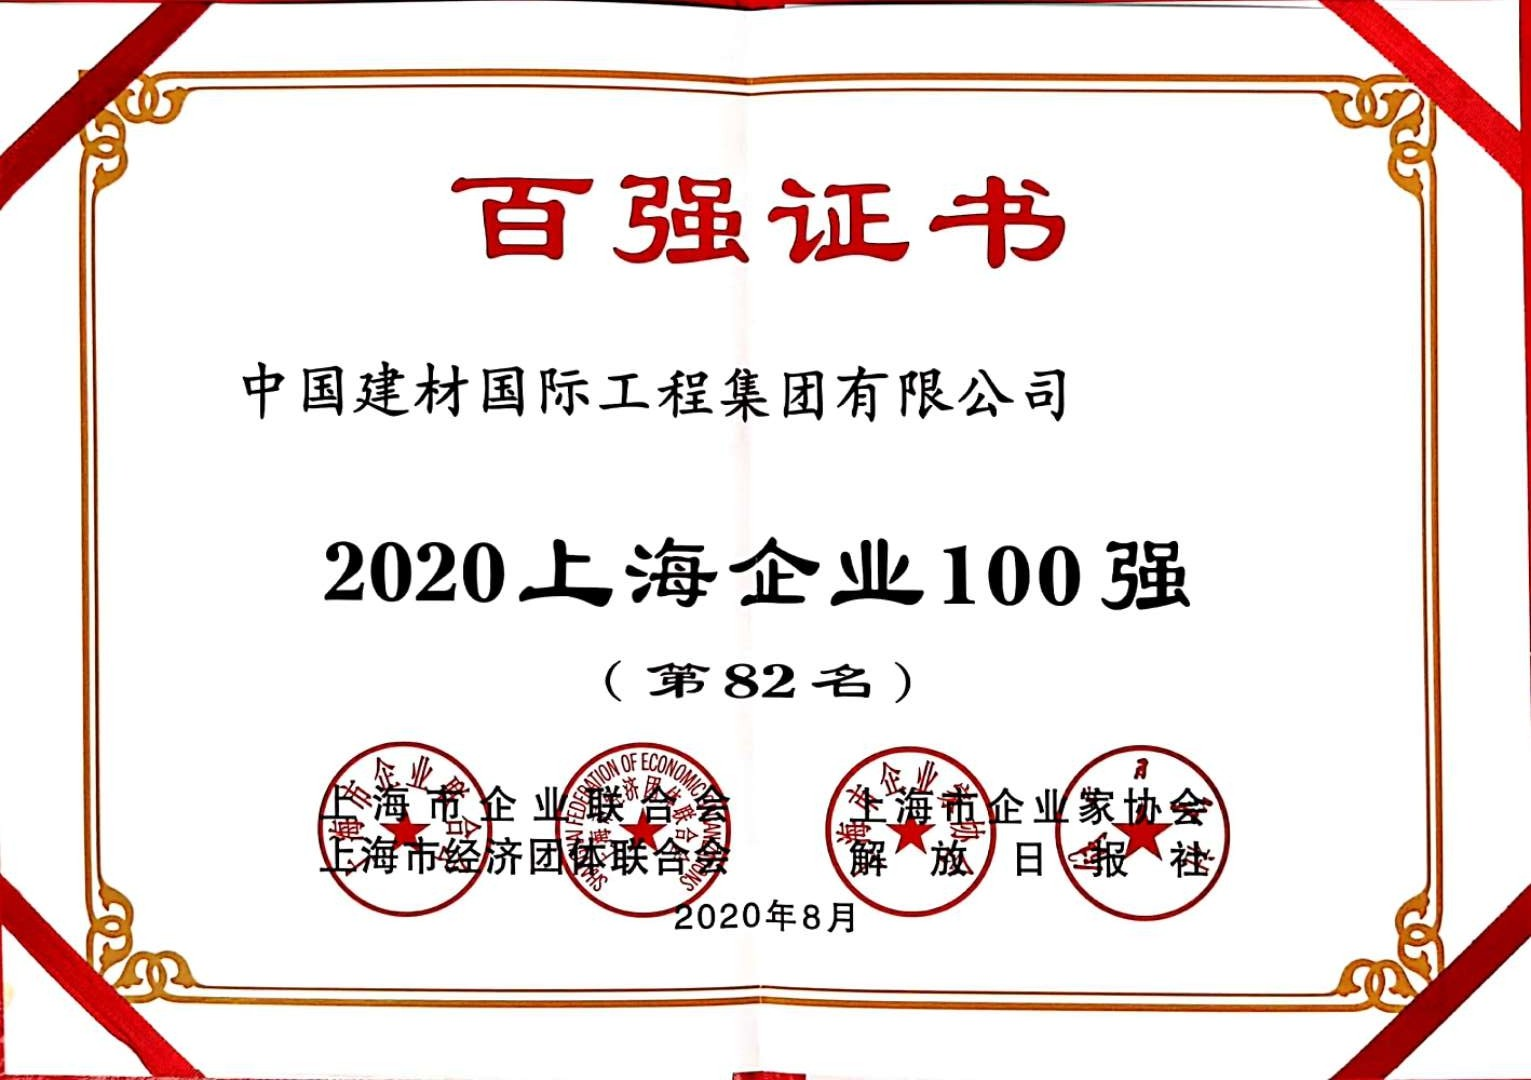 Top 100 Shanghai enterprises 2020 (82nd). Jpg